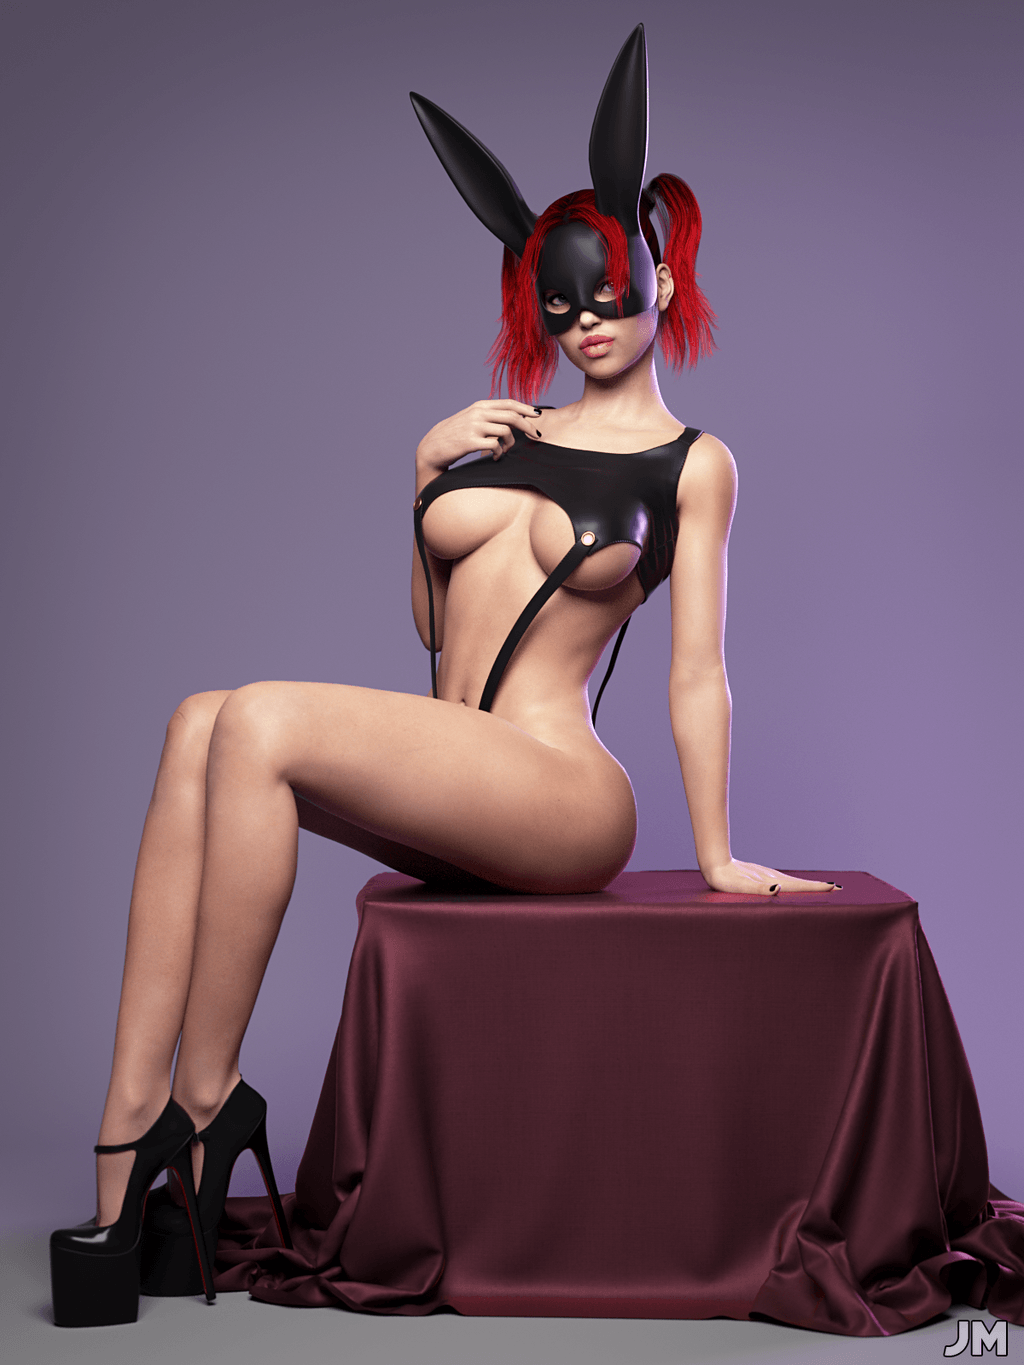 sexual_bunny_by_javiermicheal-dagal5s